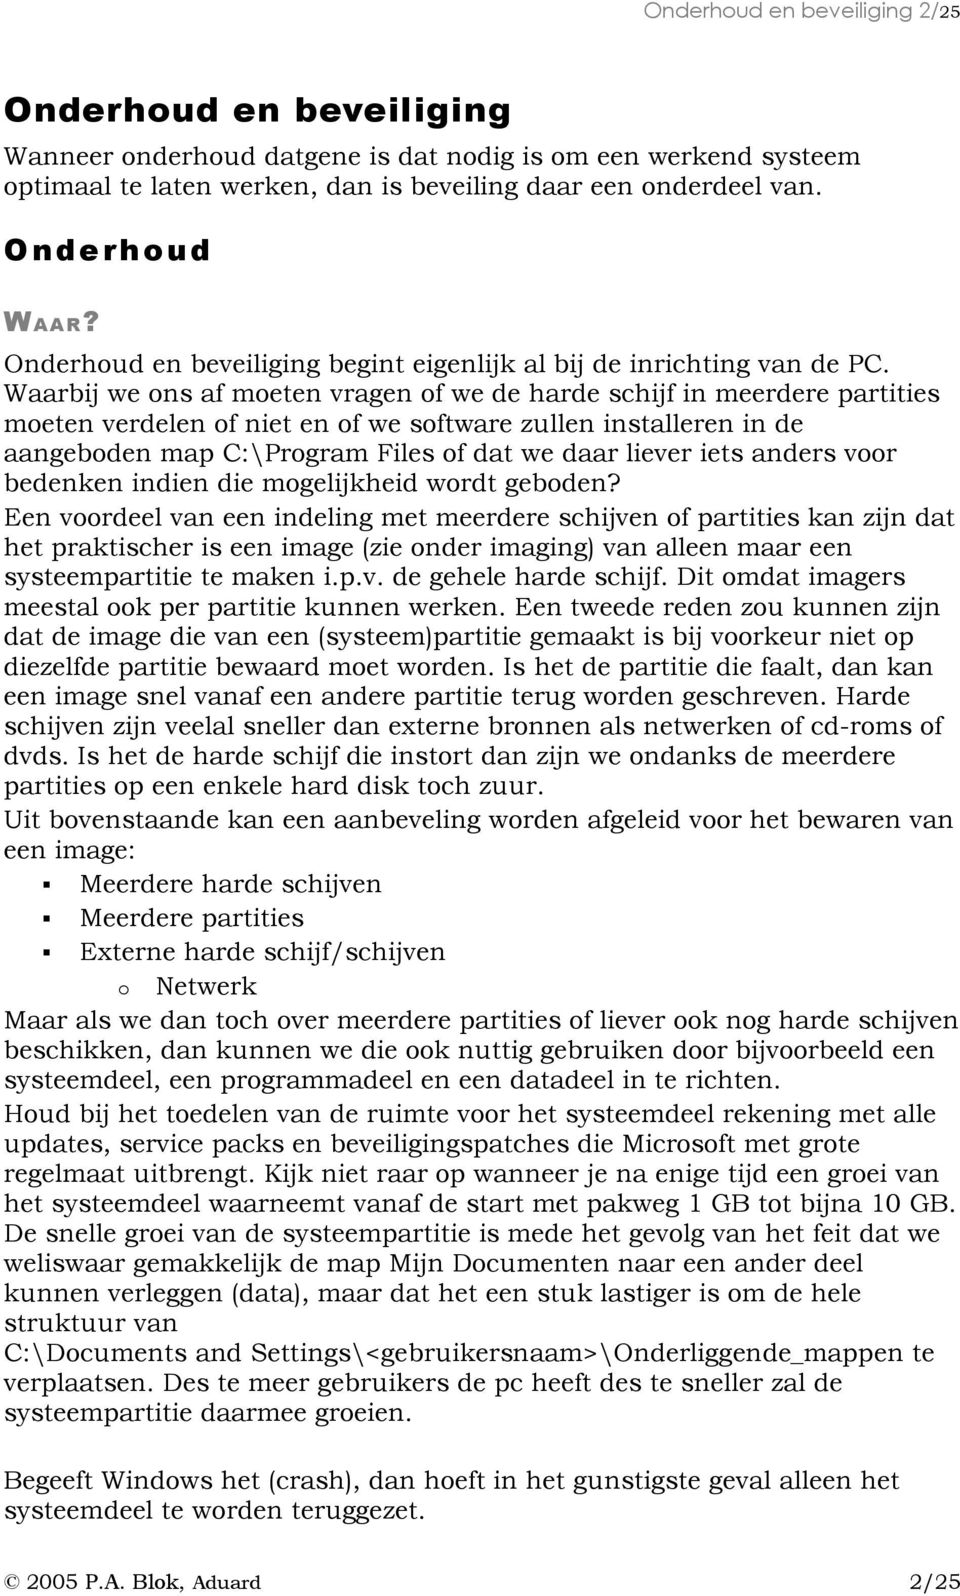 Waarbij we ons af moeten vragen of we de harde schijf in meerdere partities moeten verdelen of niet en of we software zullen installeren in de aangeboden map C:\Program Files of dat we daar liever